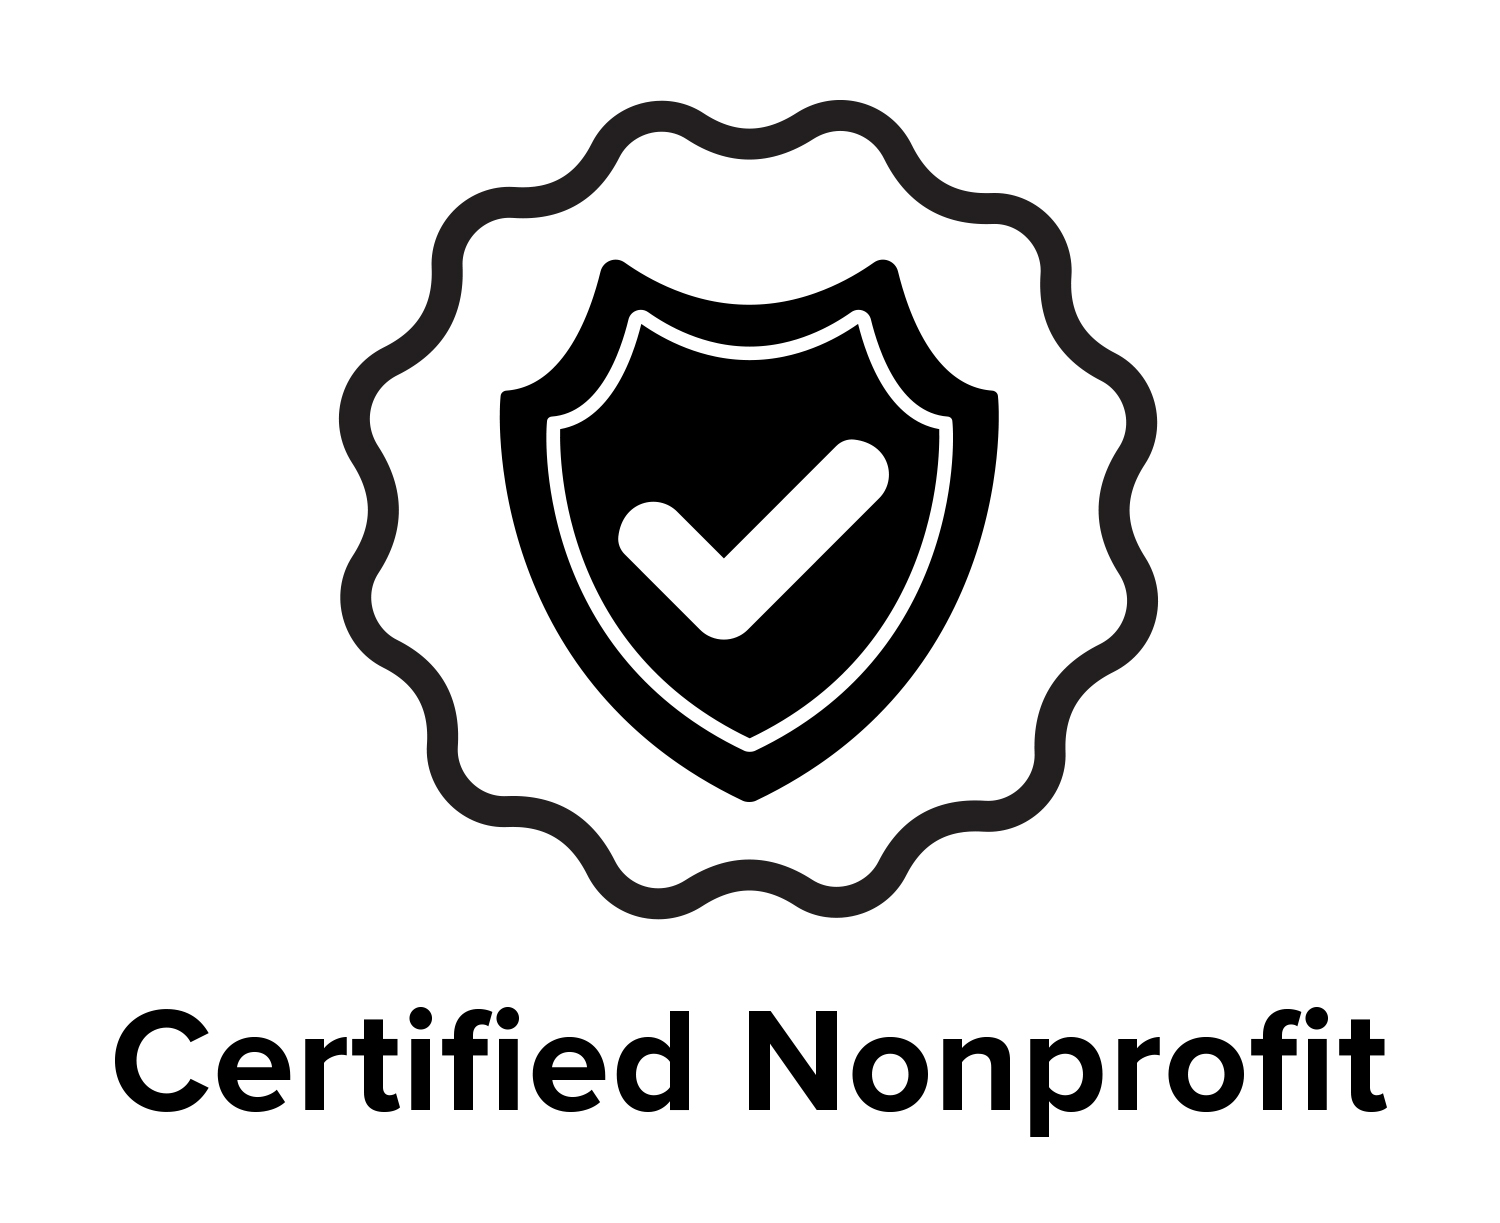 Nonprofit-organization